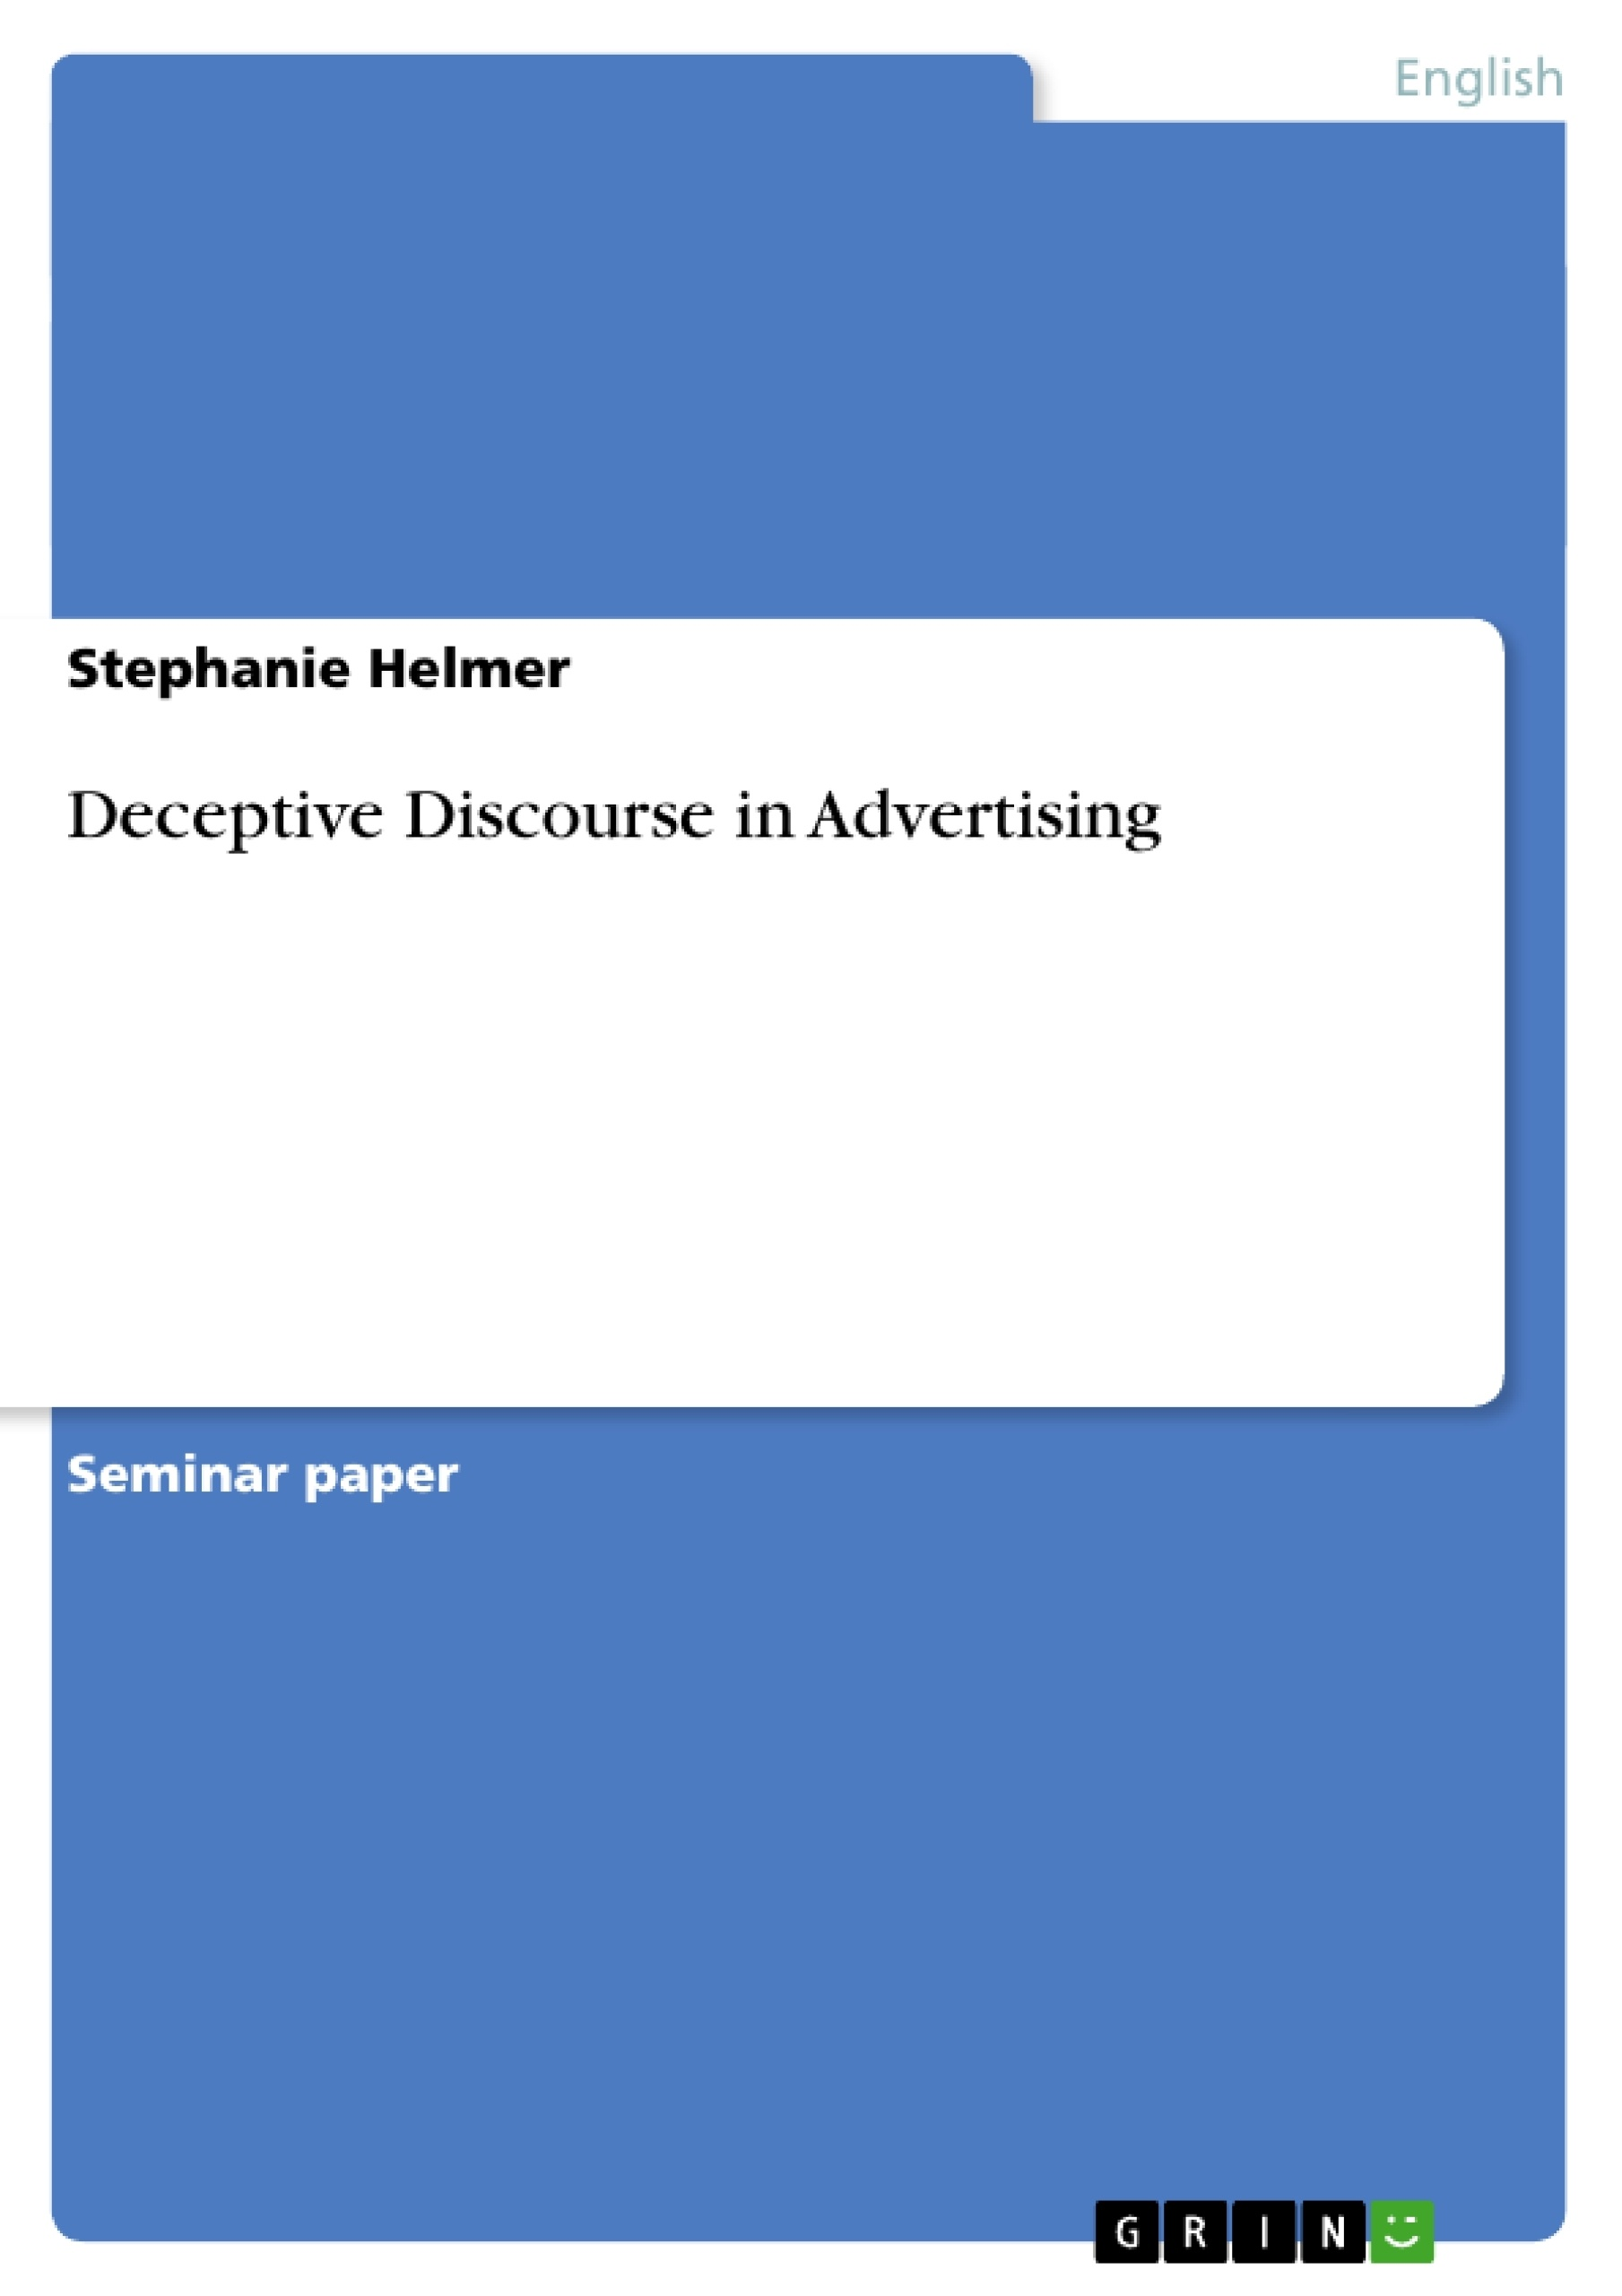 Title: Deceptive Discourse in Advertising